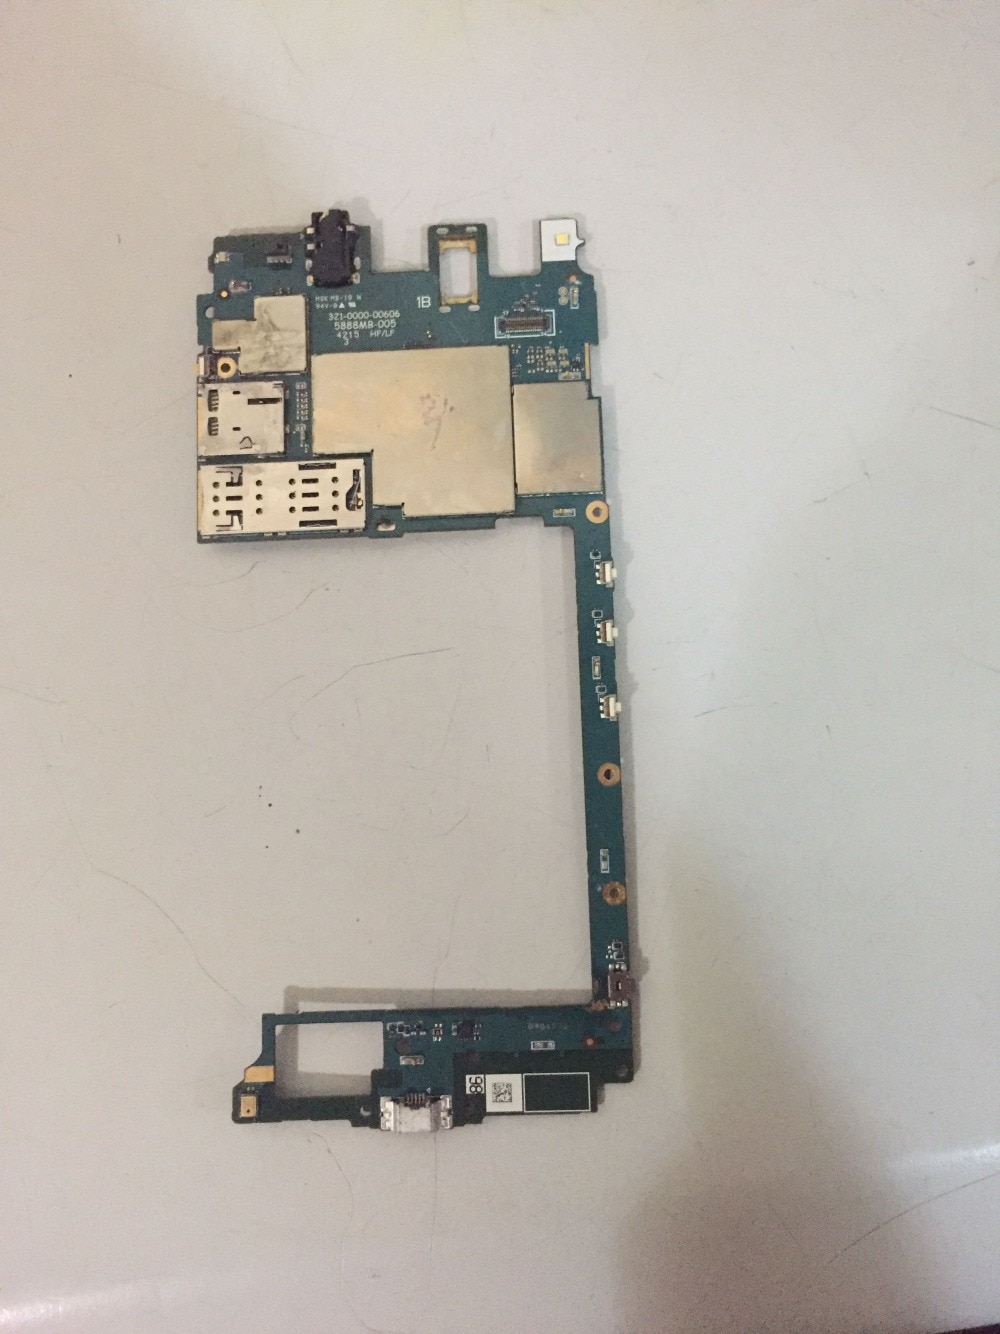 New Ymitn Housing Mobile Electronic panel mainboard Motherboard Circuits Cable For Sony Xperia C5 Ultra